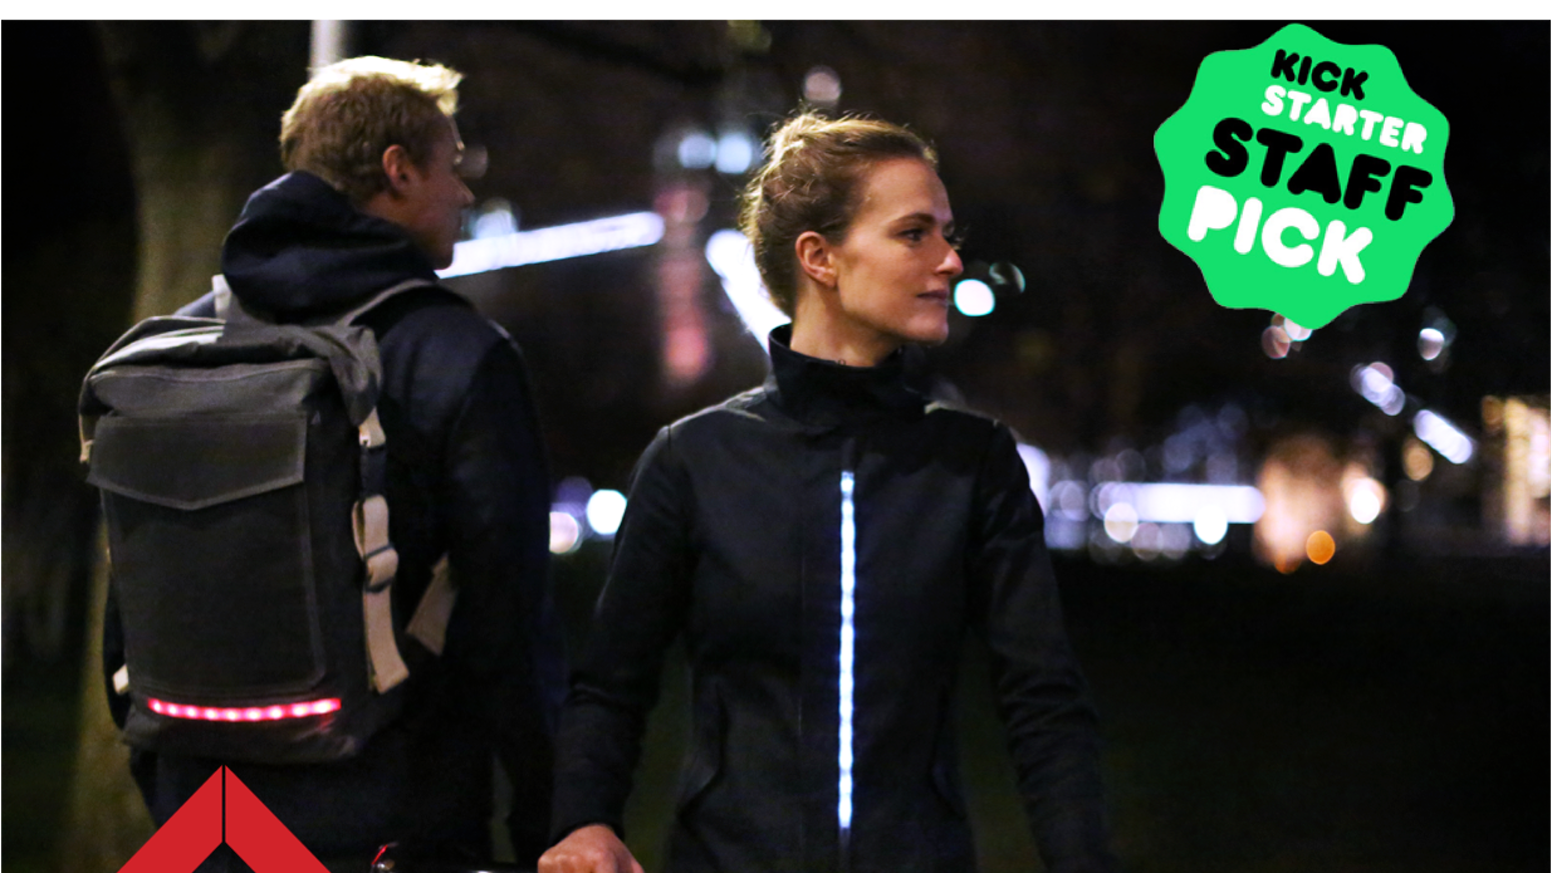 LUMO is a new range of beautifully designed LUMO city cycling jackets and bags with in-built LED lights. Crafted for style, visibility and comfort on the bike.